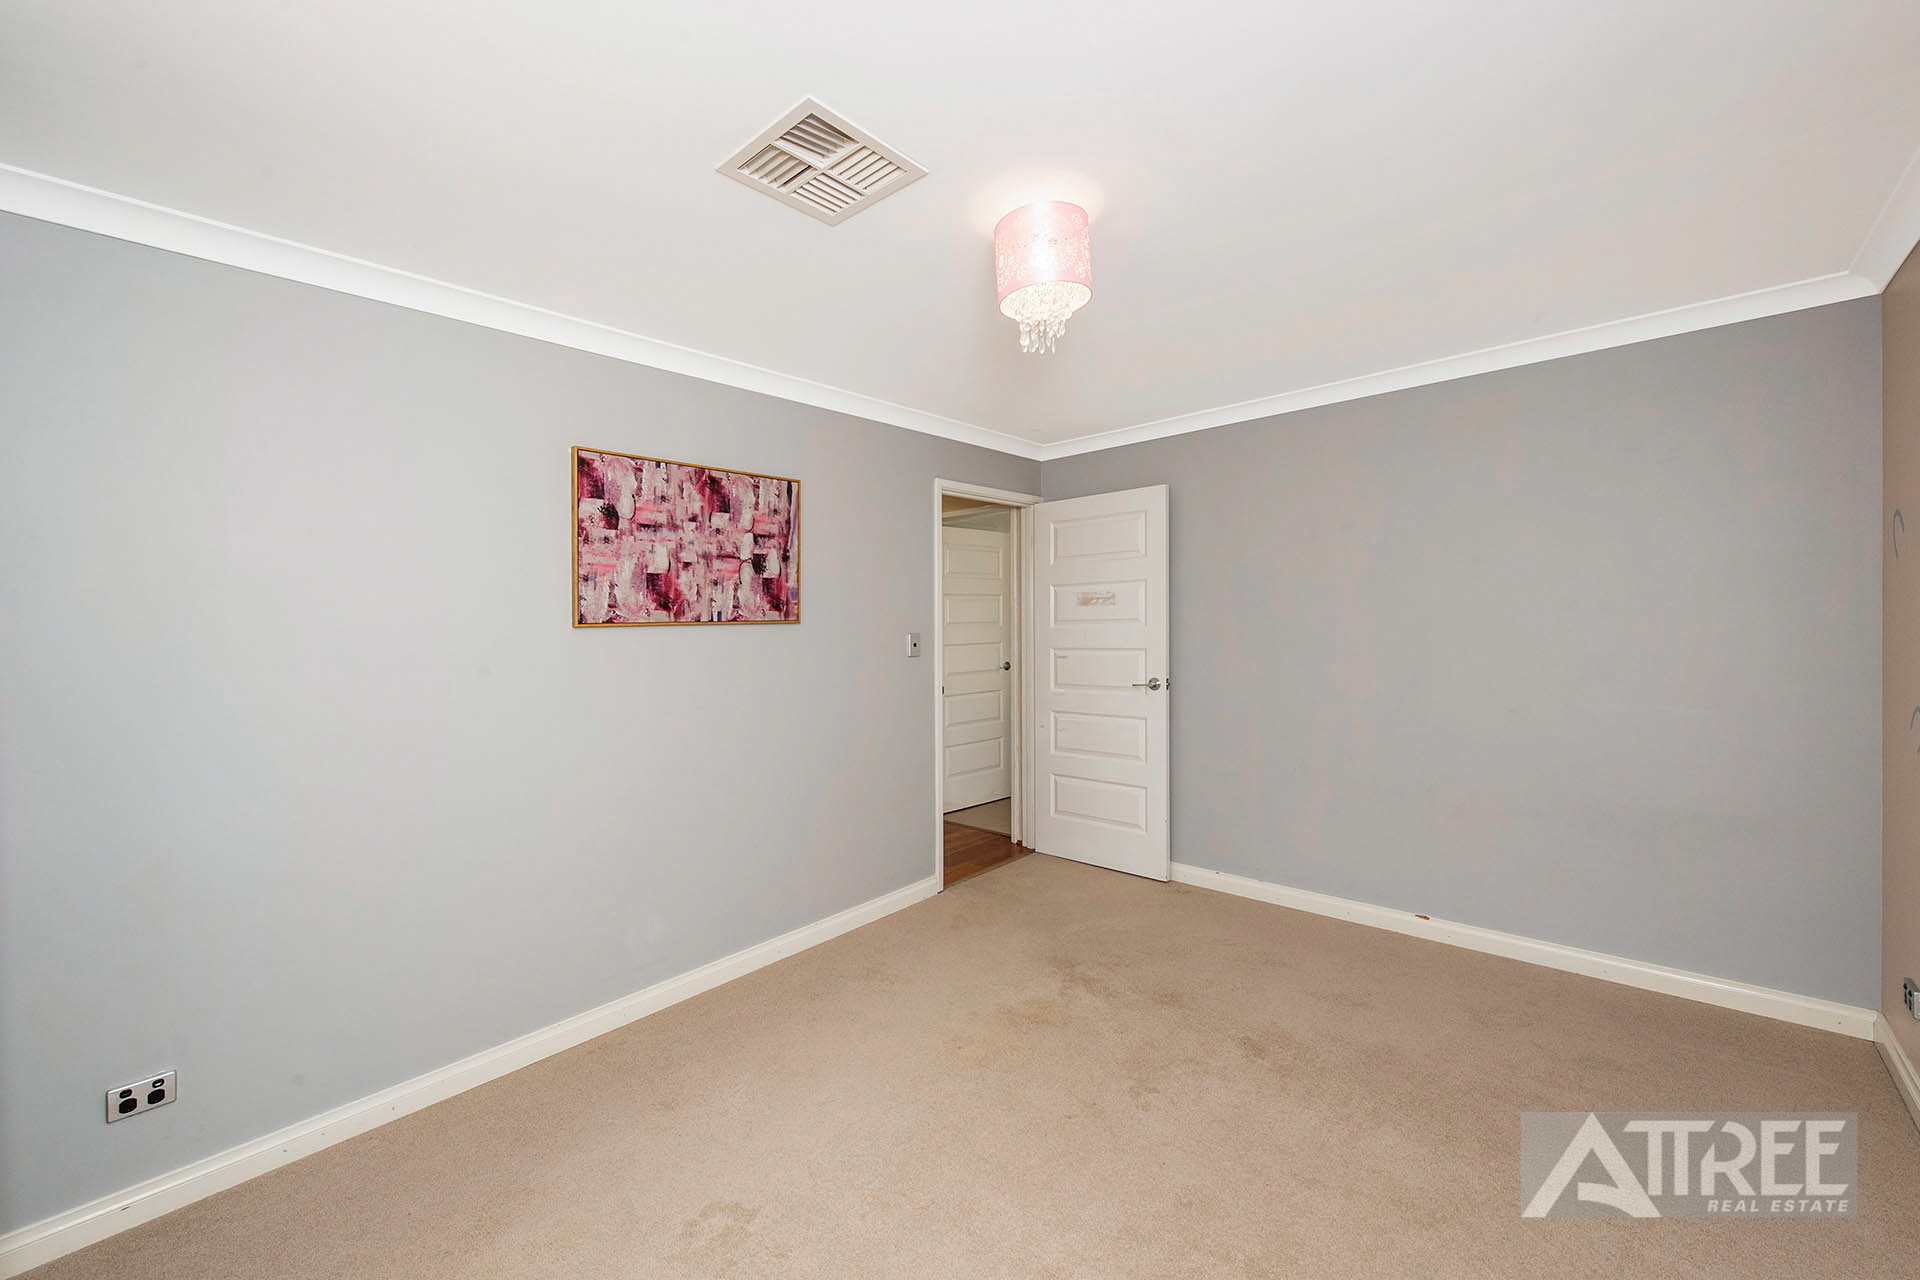 Property for sale in HARRISDALE, 212 Wright Road : Attree Real Estate